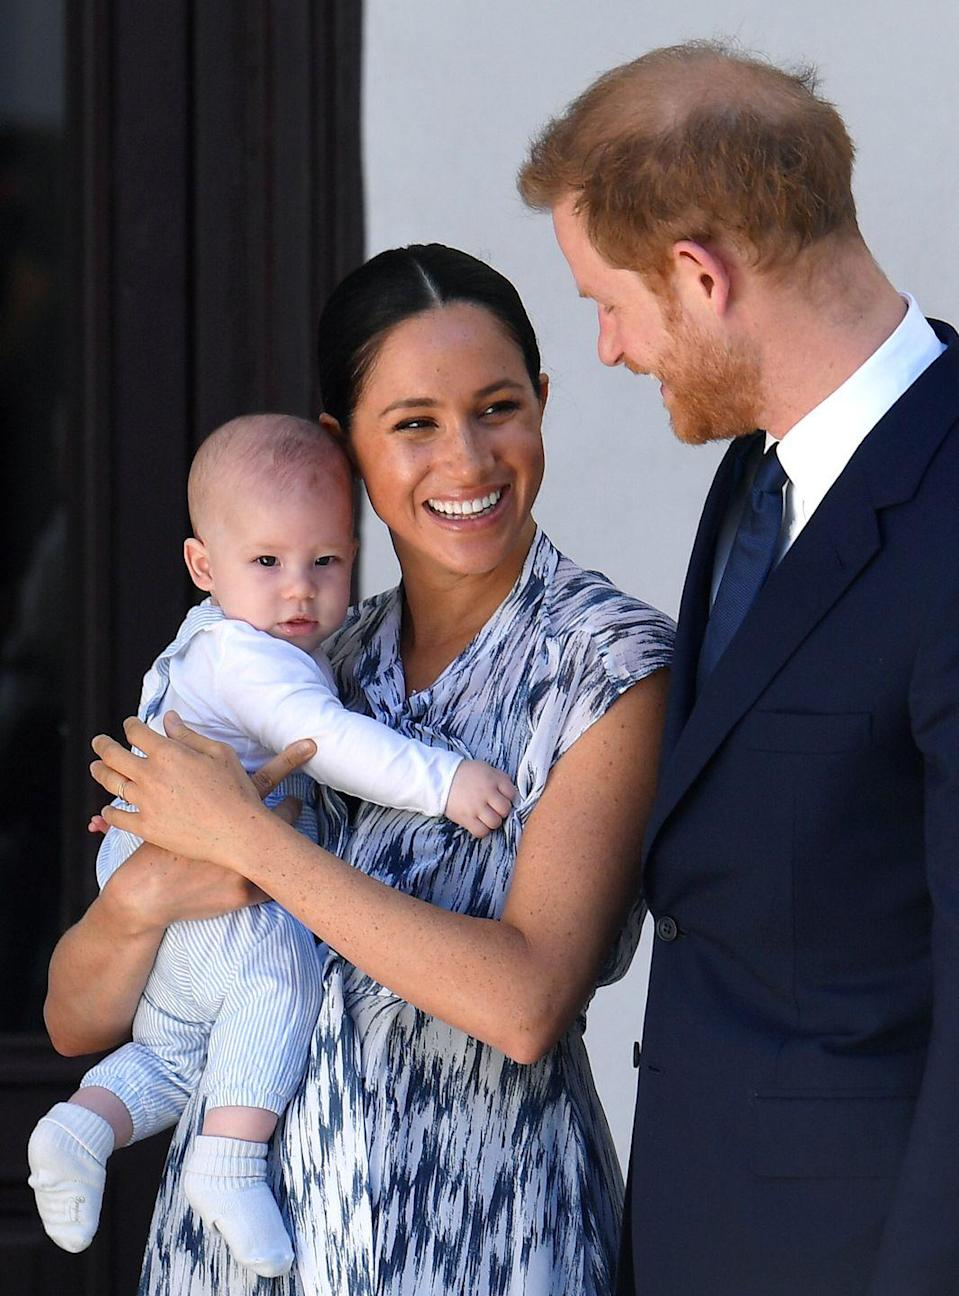 Prince Harry and Meghan Markle Were Super Close to Giving Archie Harrison a Different Name